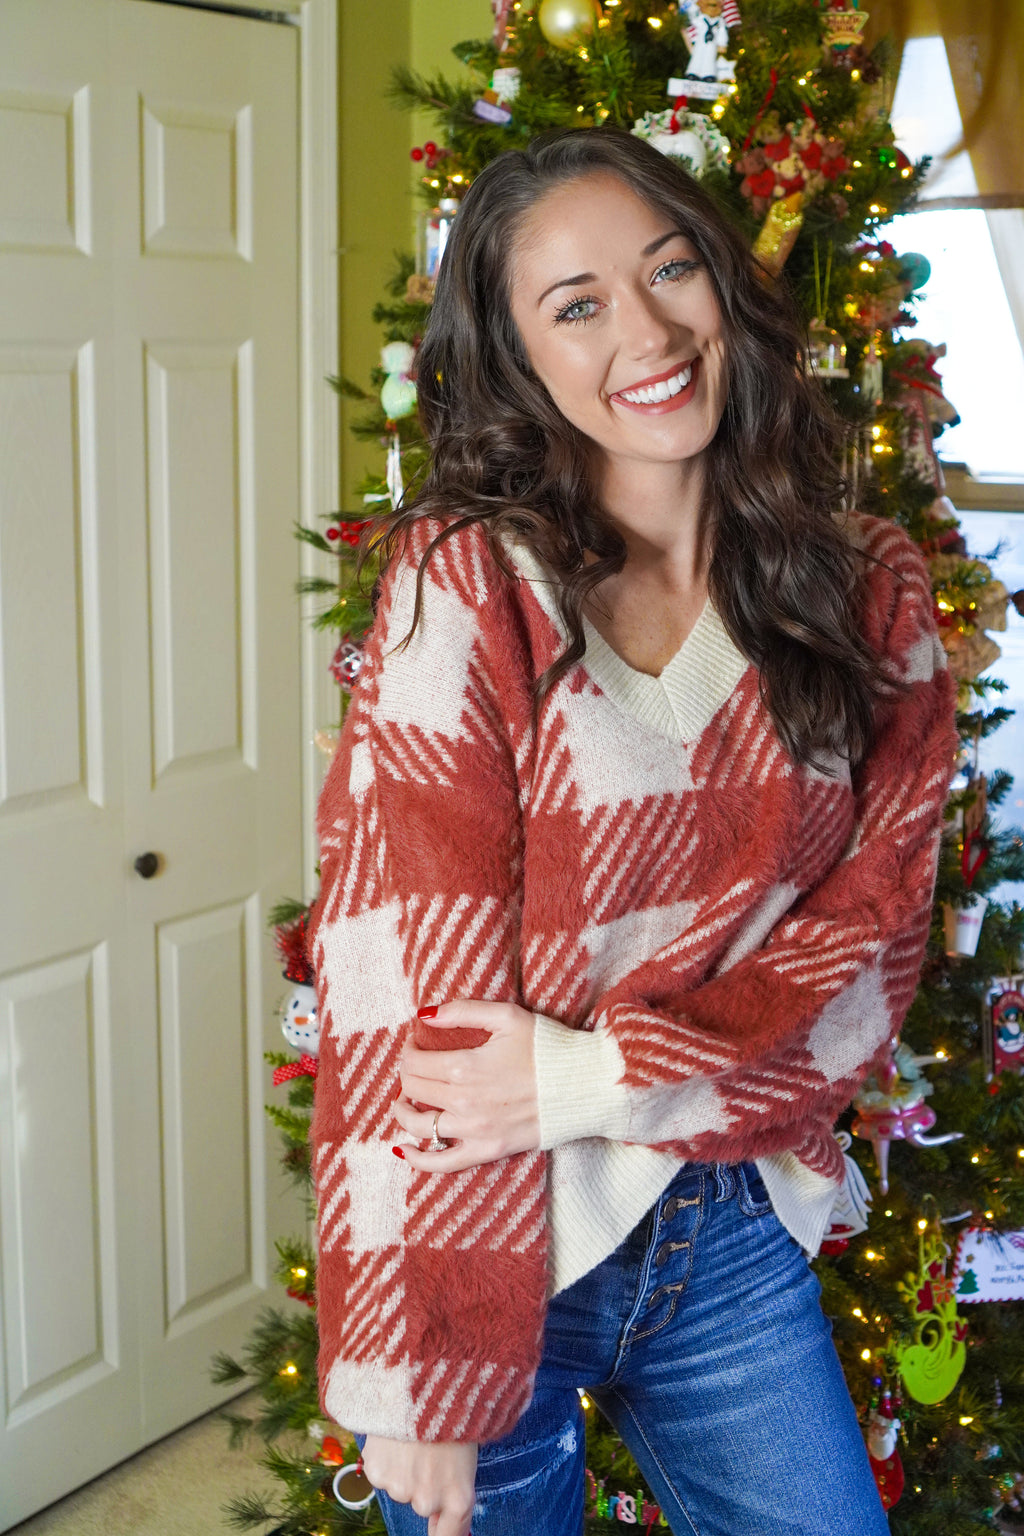 Candy Cane Plaid Sweater